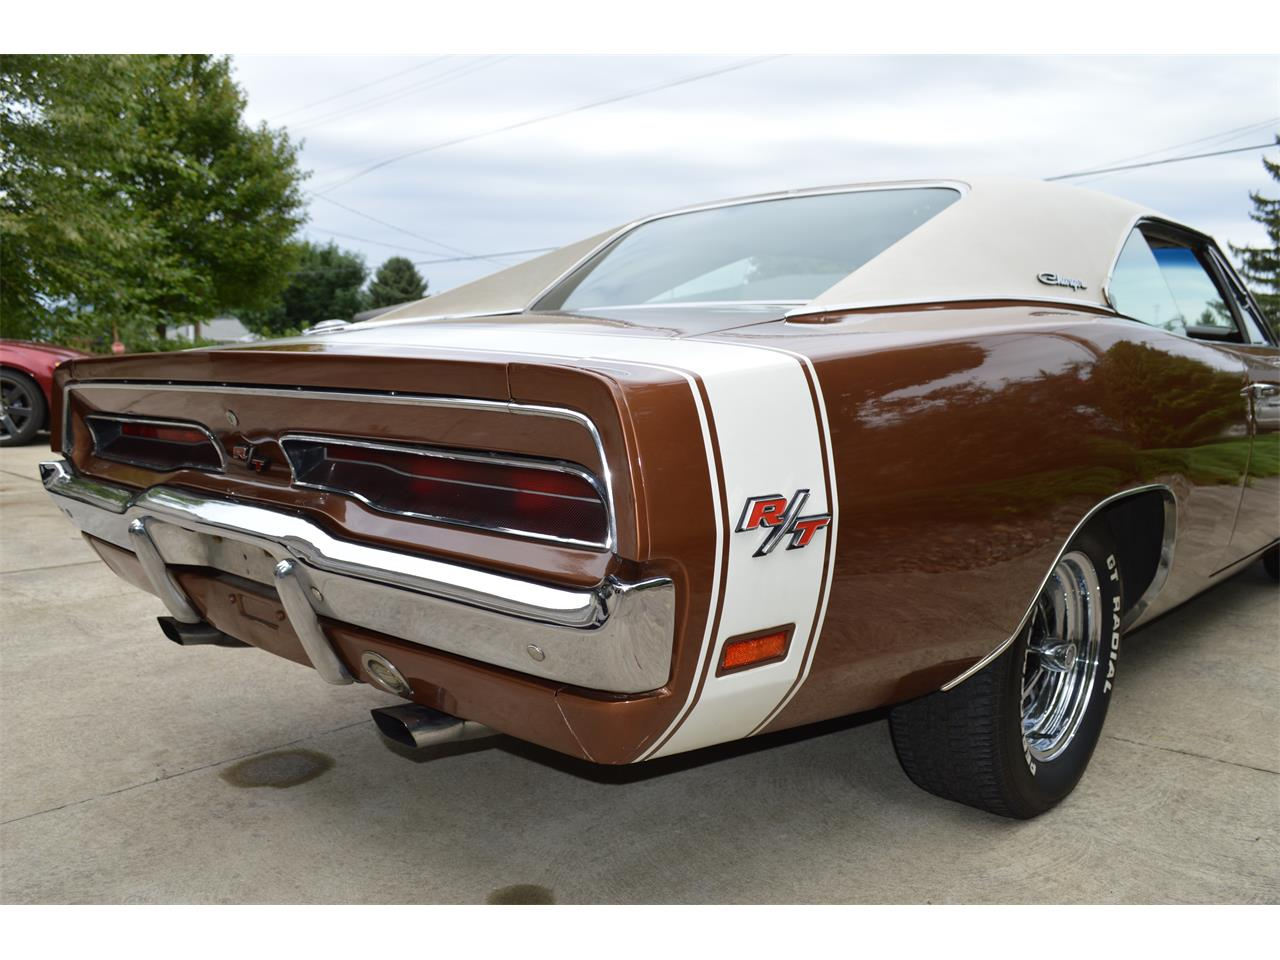 Large Picture of '69 Dodge Charger Hemi R/T located in Pennsylvania - $132,500.00 Offered by a Private Seller - OOYS